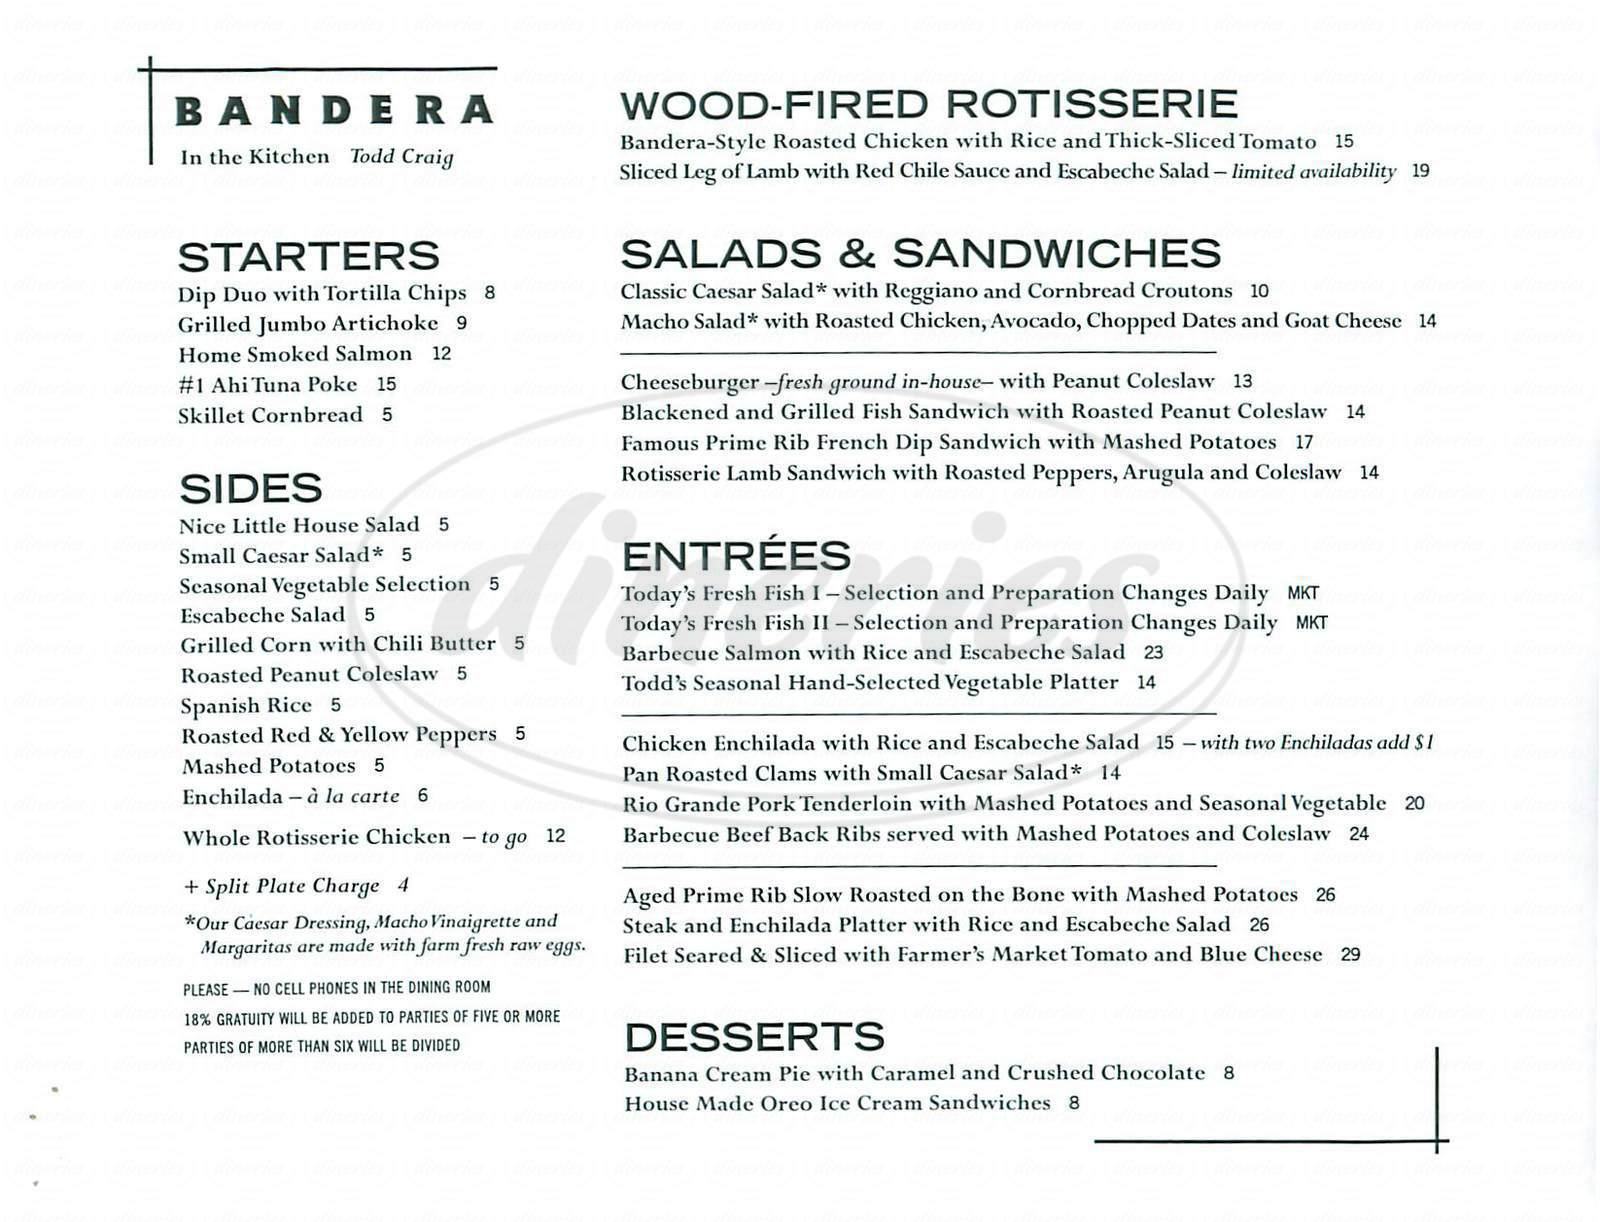 menu for Bandera Restaurant